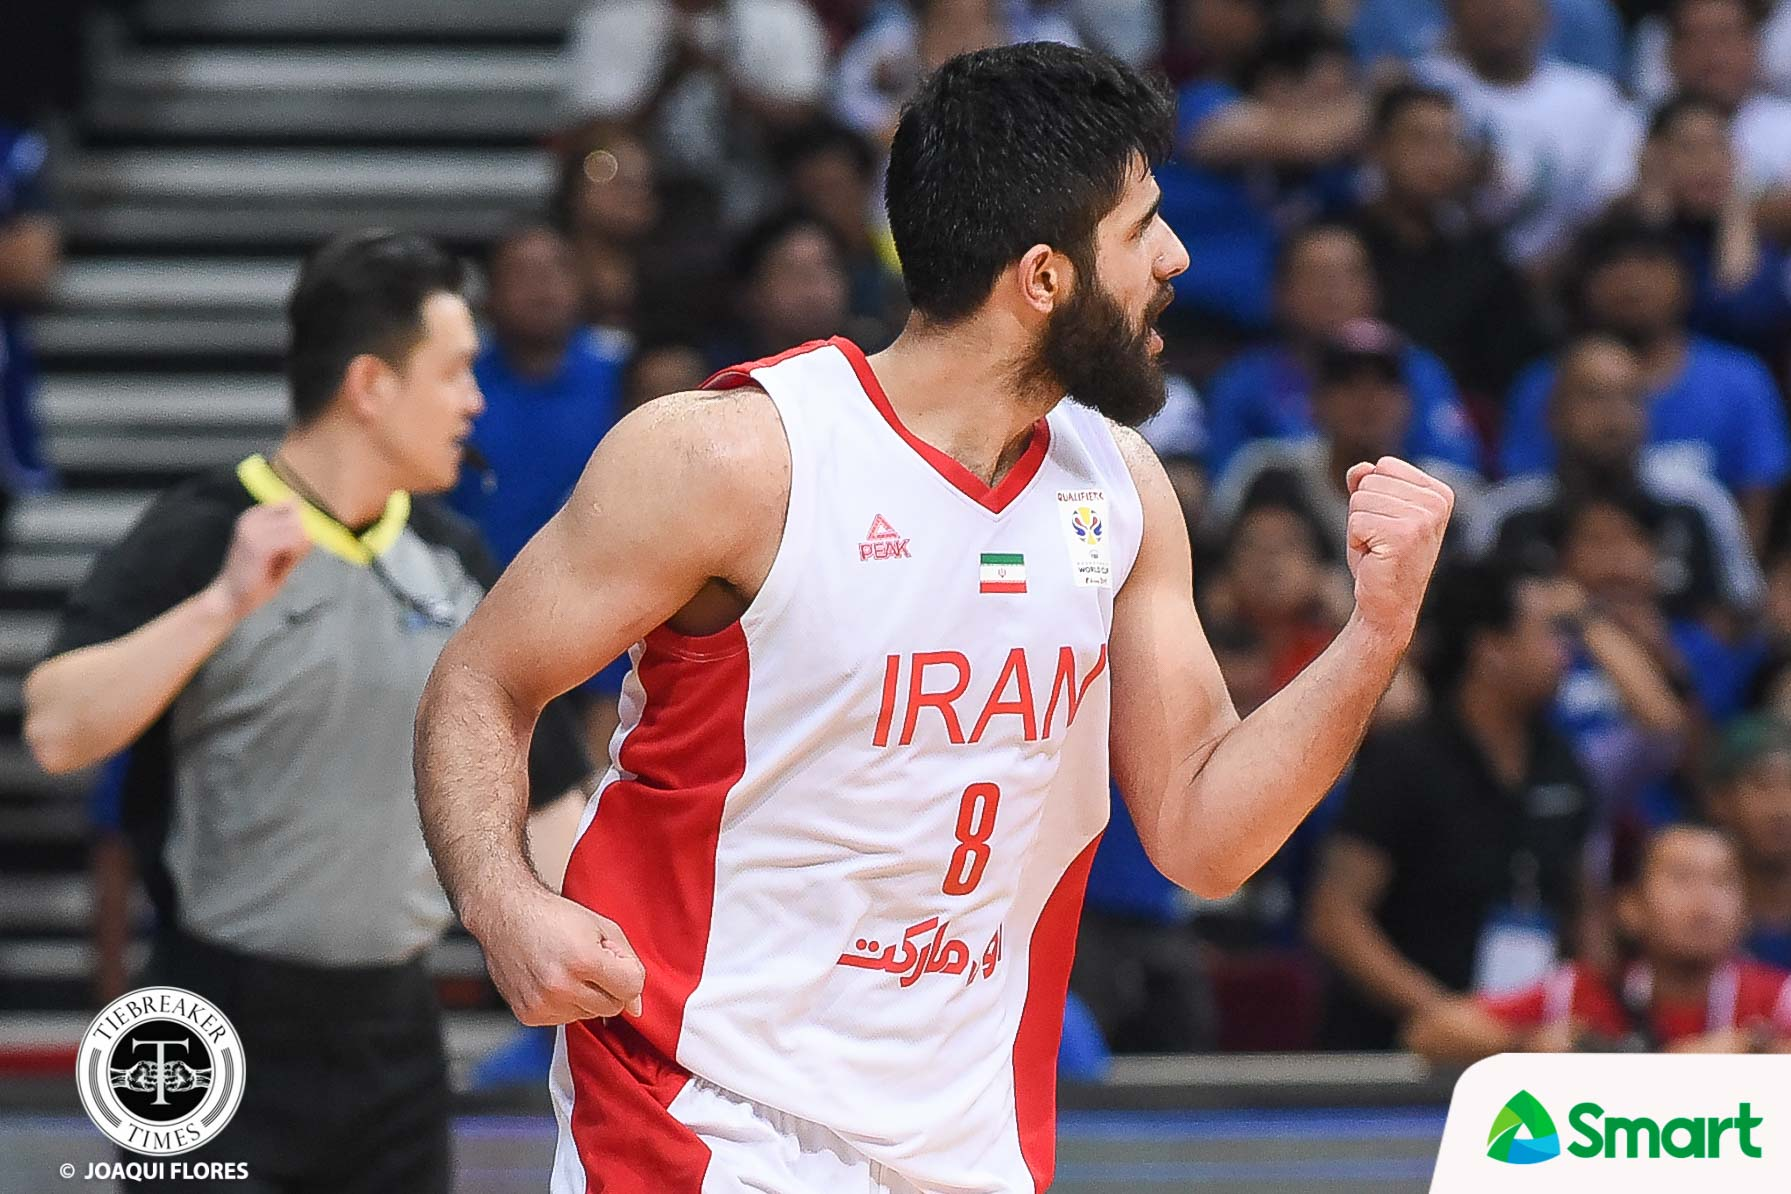 Tiebreaker Times Gilas silenced by Iran, drops to 4th 2019 FIBA World Cup Qualifiers Basketball Gilas Pilipinas News  Yeng Guiao Mohammad Jamshidi Meisam Mirzaei Mehran Shahintab Marcio Lassiter Jayson Castro Iran (Basketball) Gilas Elite Christian Standhardinger Behnam Yakhchali 2019 FIBA World Cup Qualifiers